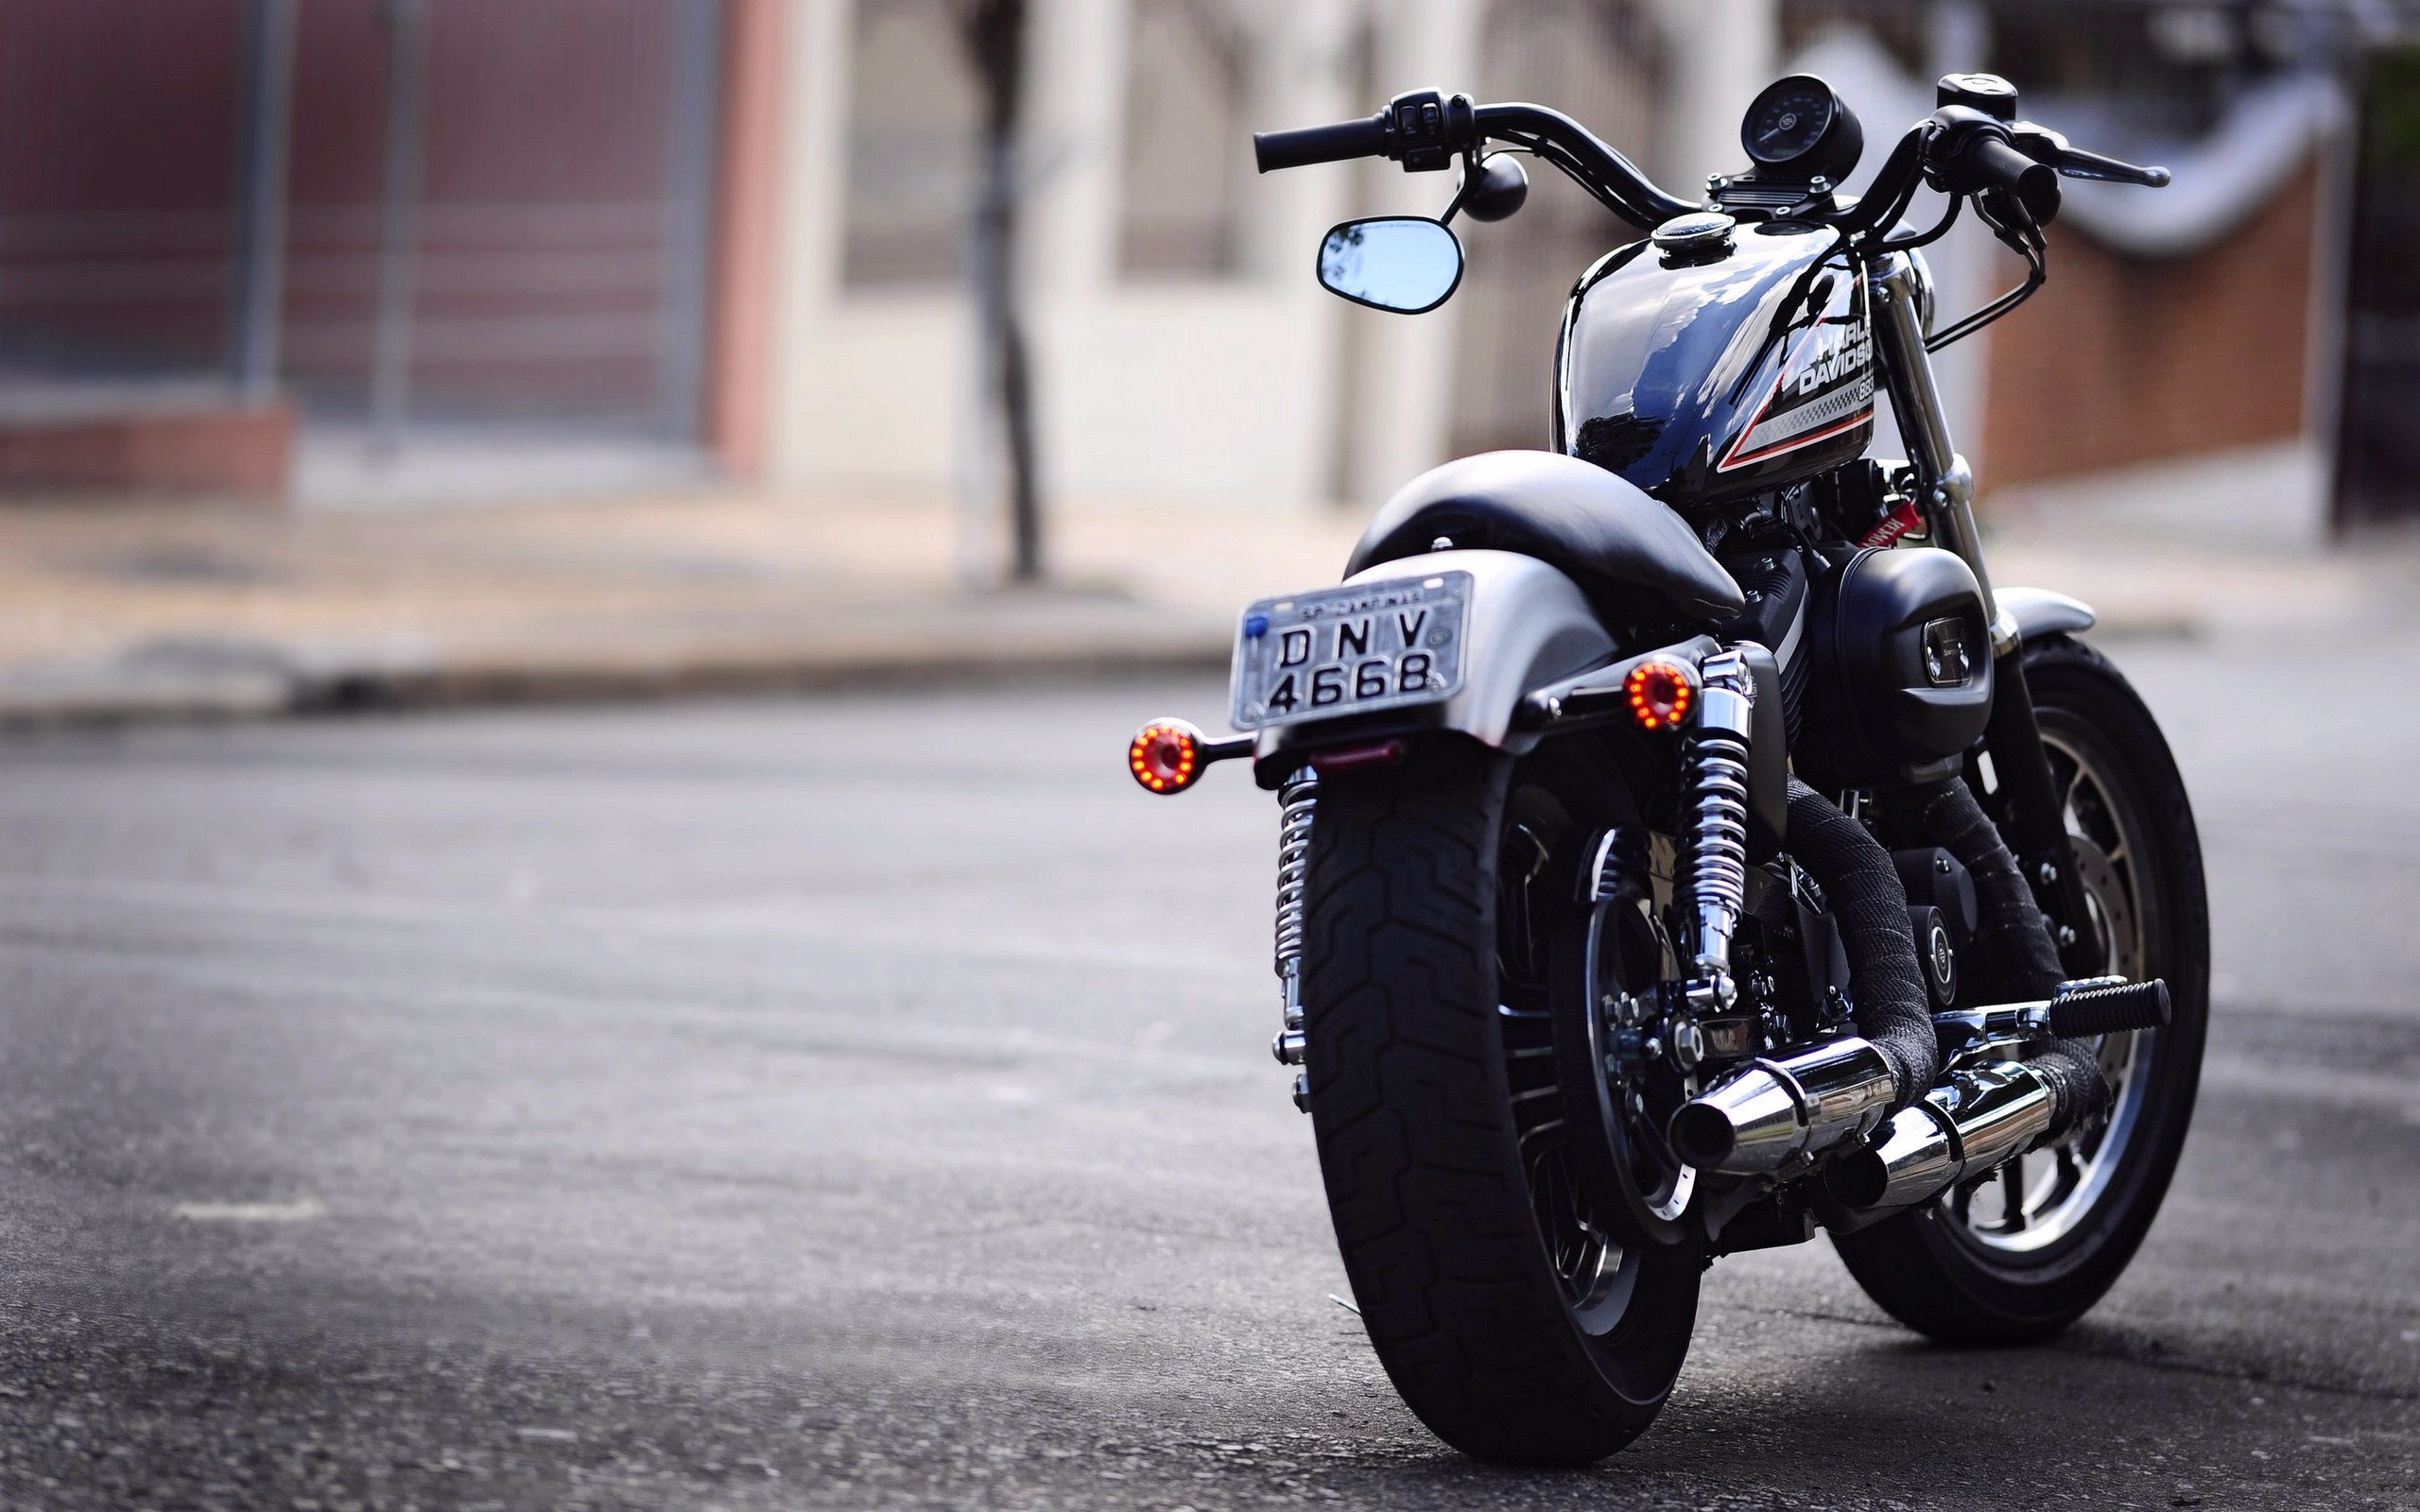 HD Wallpapers Motorcycle Harley Davidson 883 HD Wallpaper 2560x1600